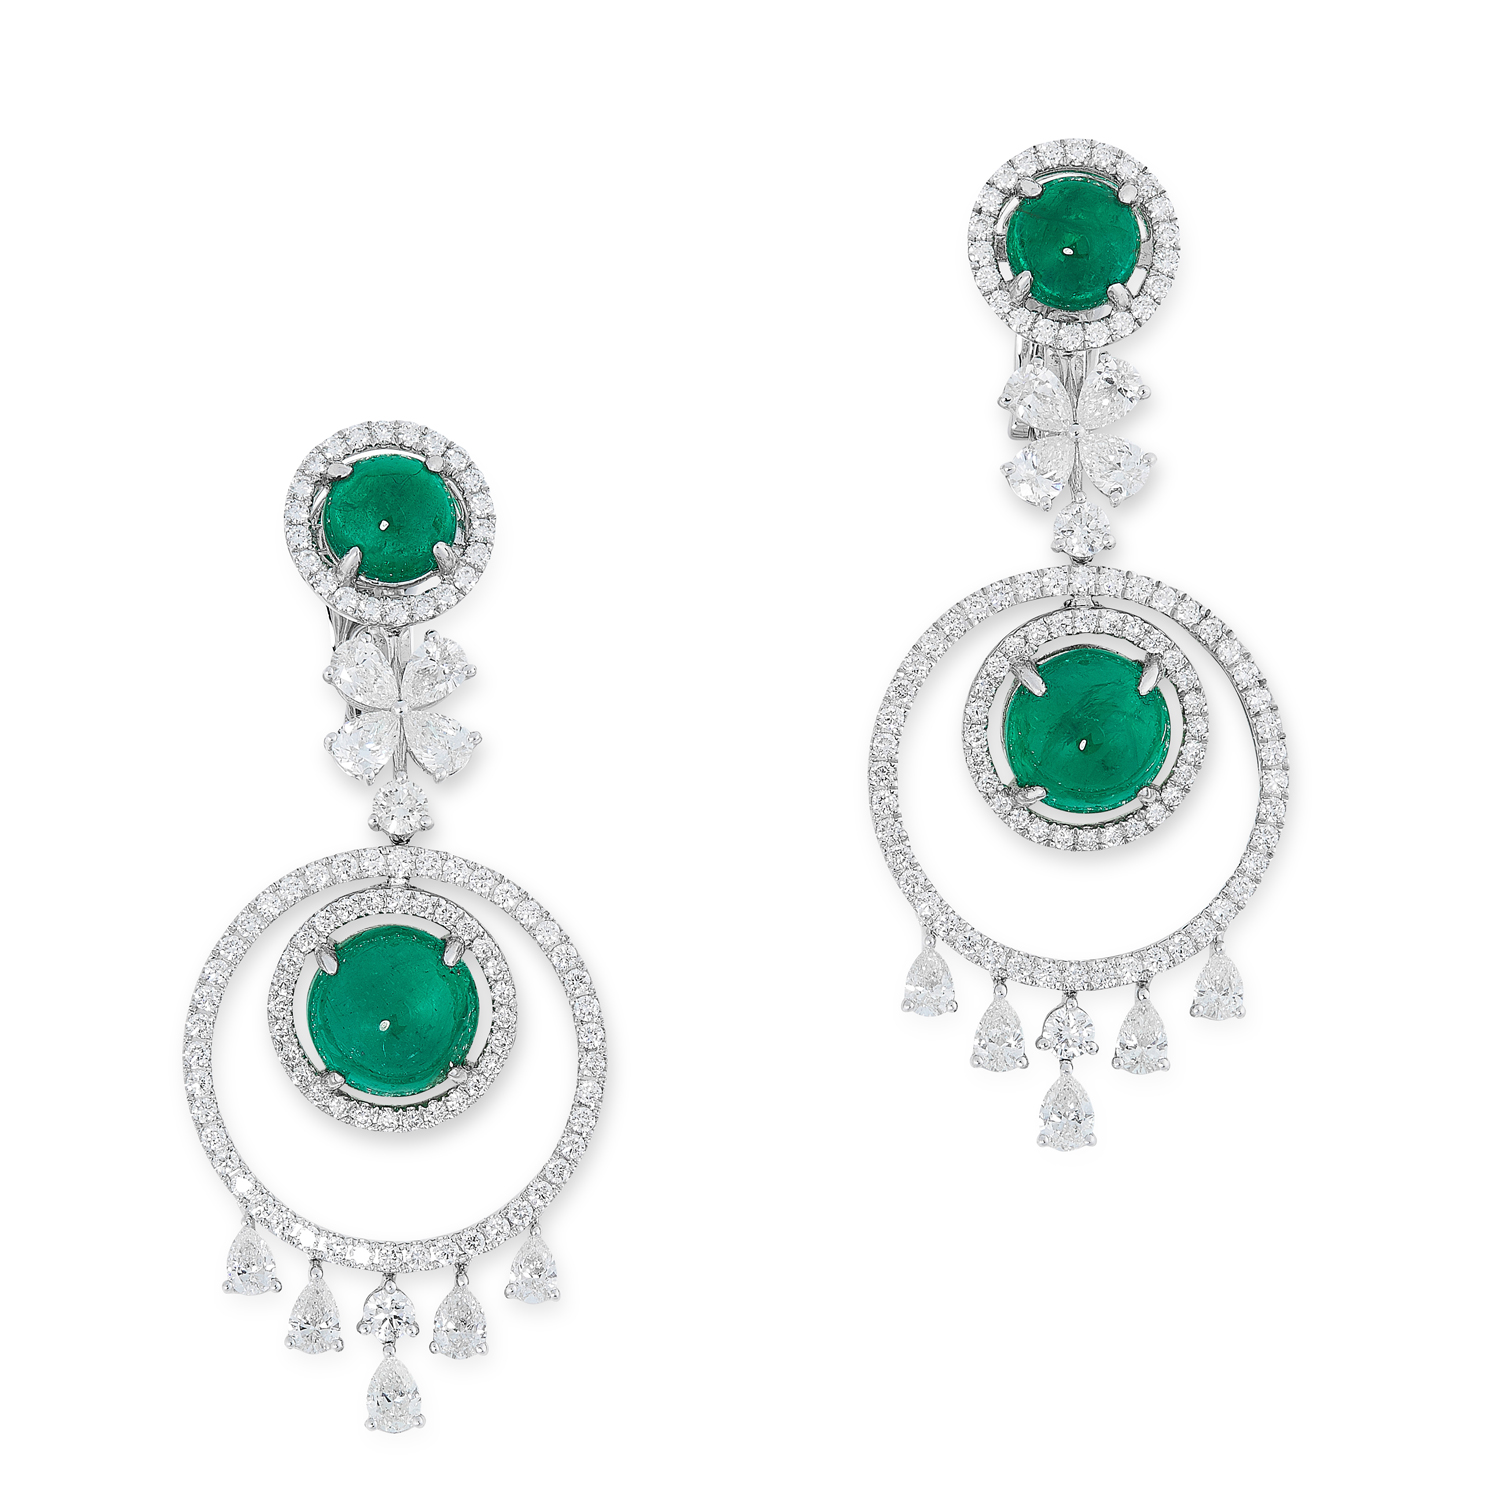 A PAIR OF EMERALD AND DIAMOND DROP EARRINGS each comprising of circular links set with round